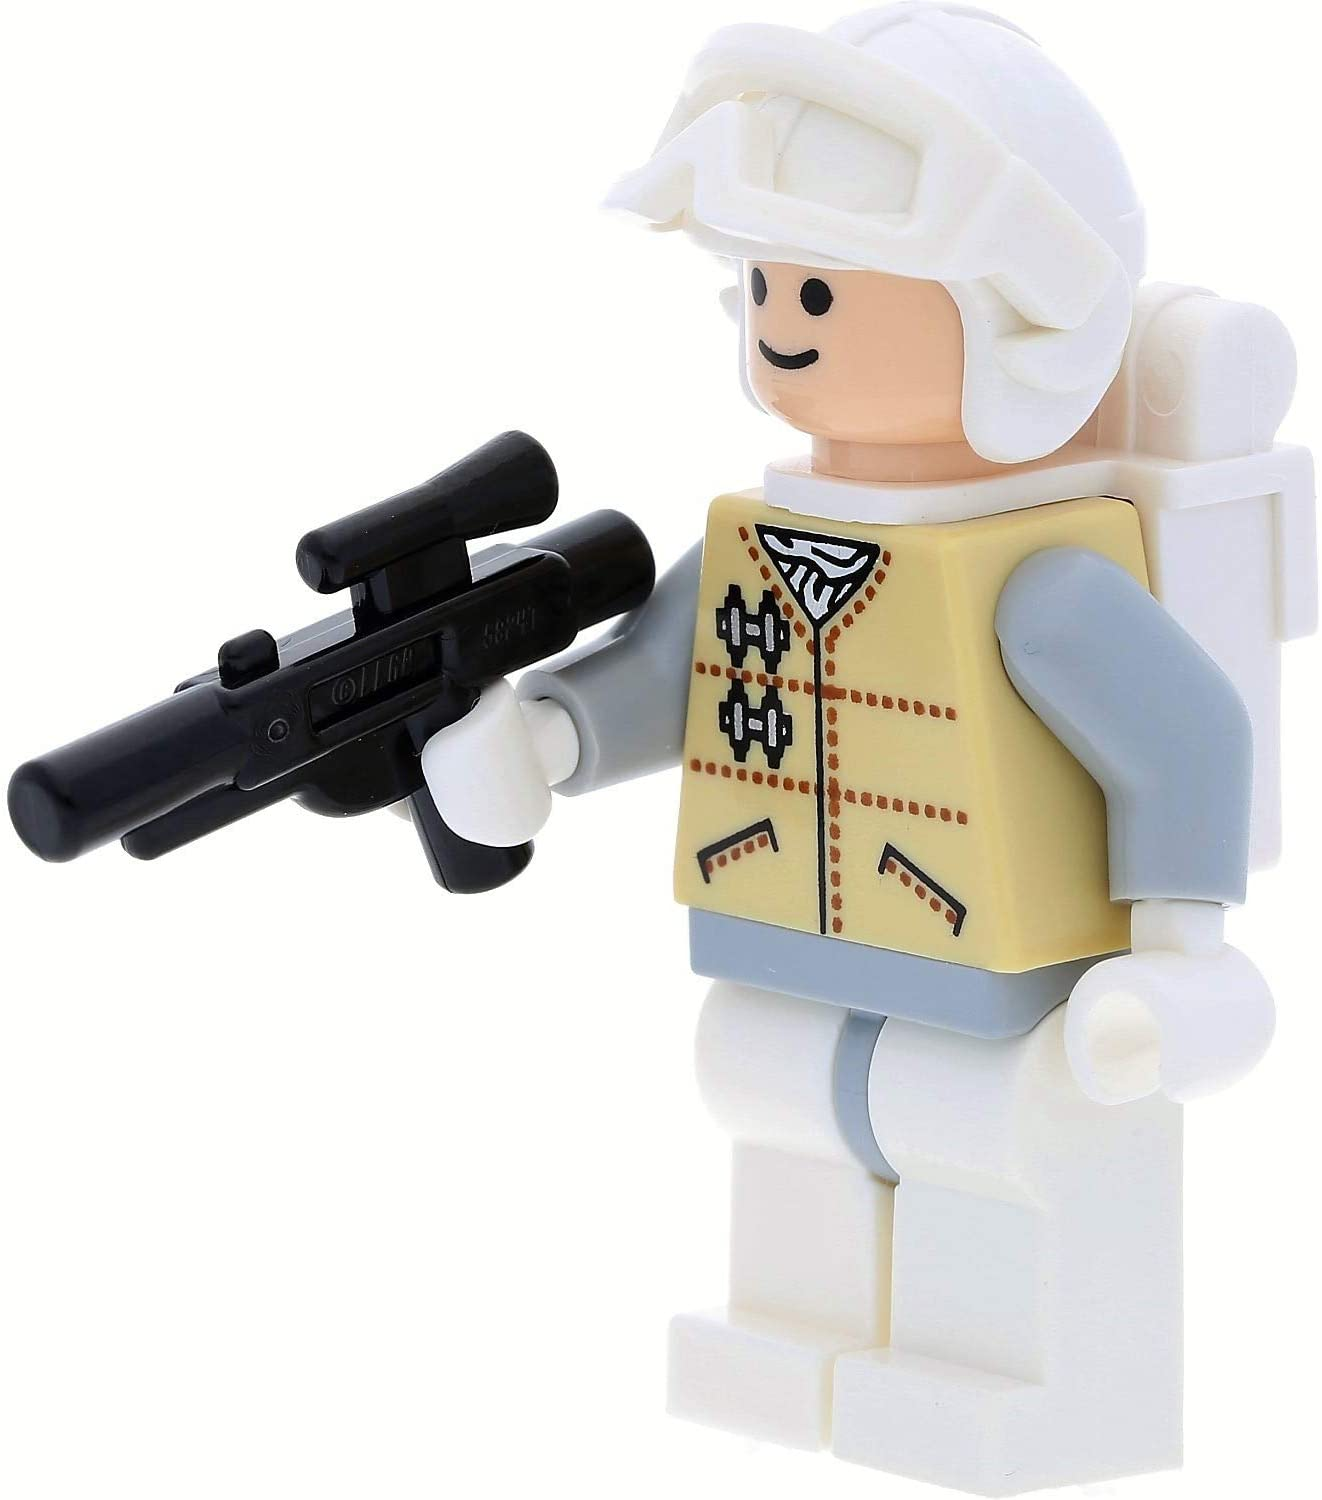 LEGO Star Wars Mini-Figure - Hoth Rebel 3